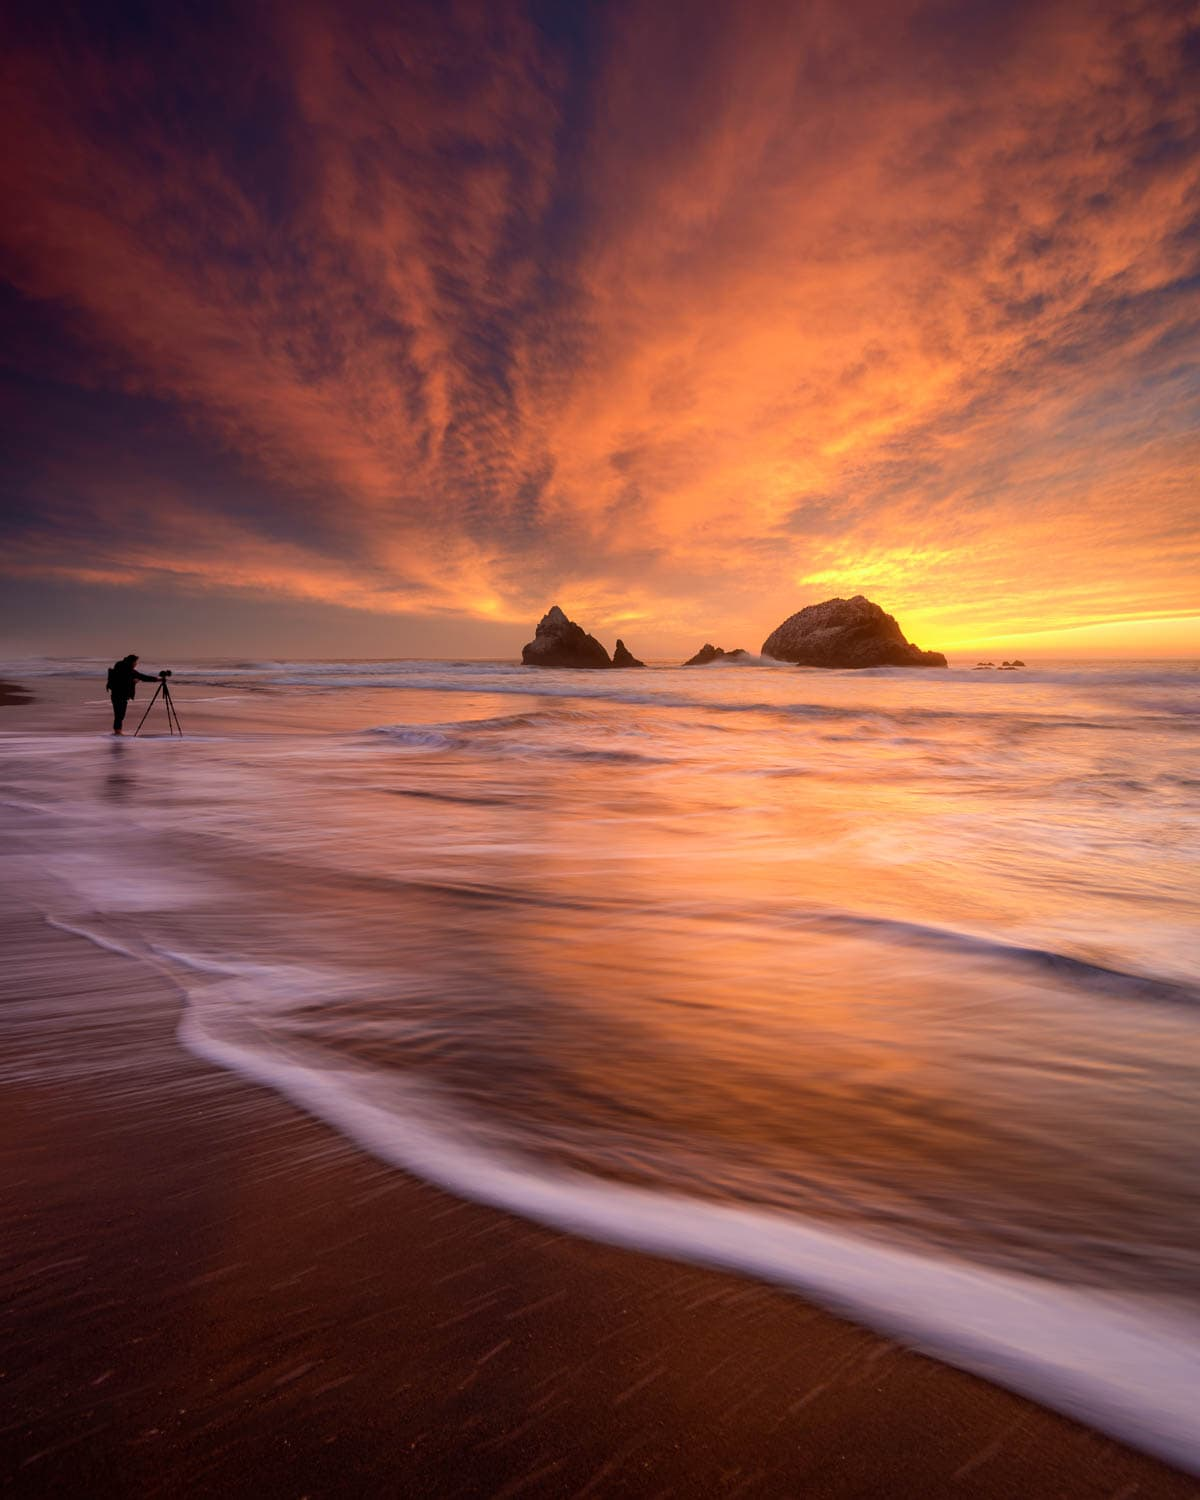 Photographer along the coast with fiery sunset at Seal Rocks